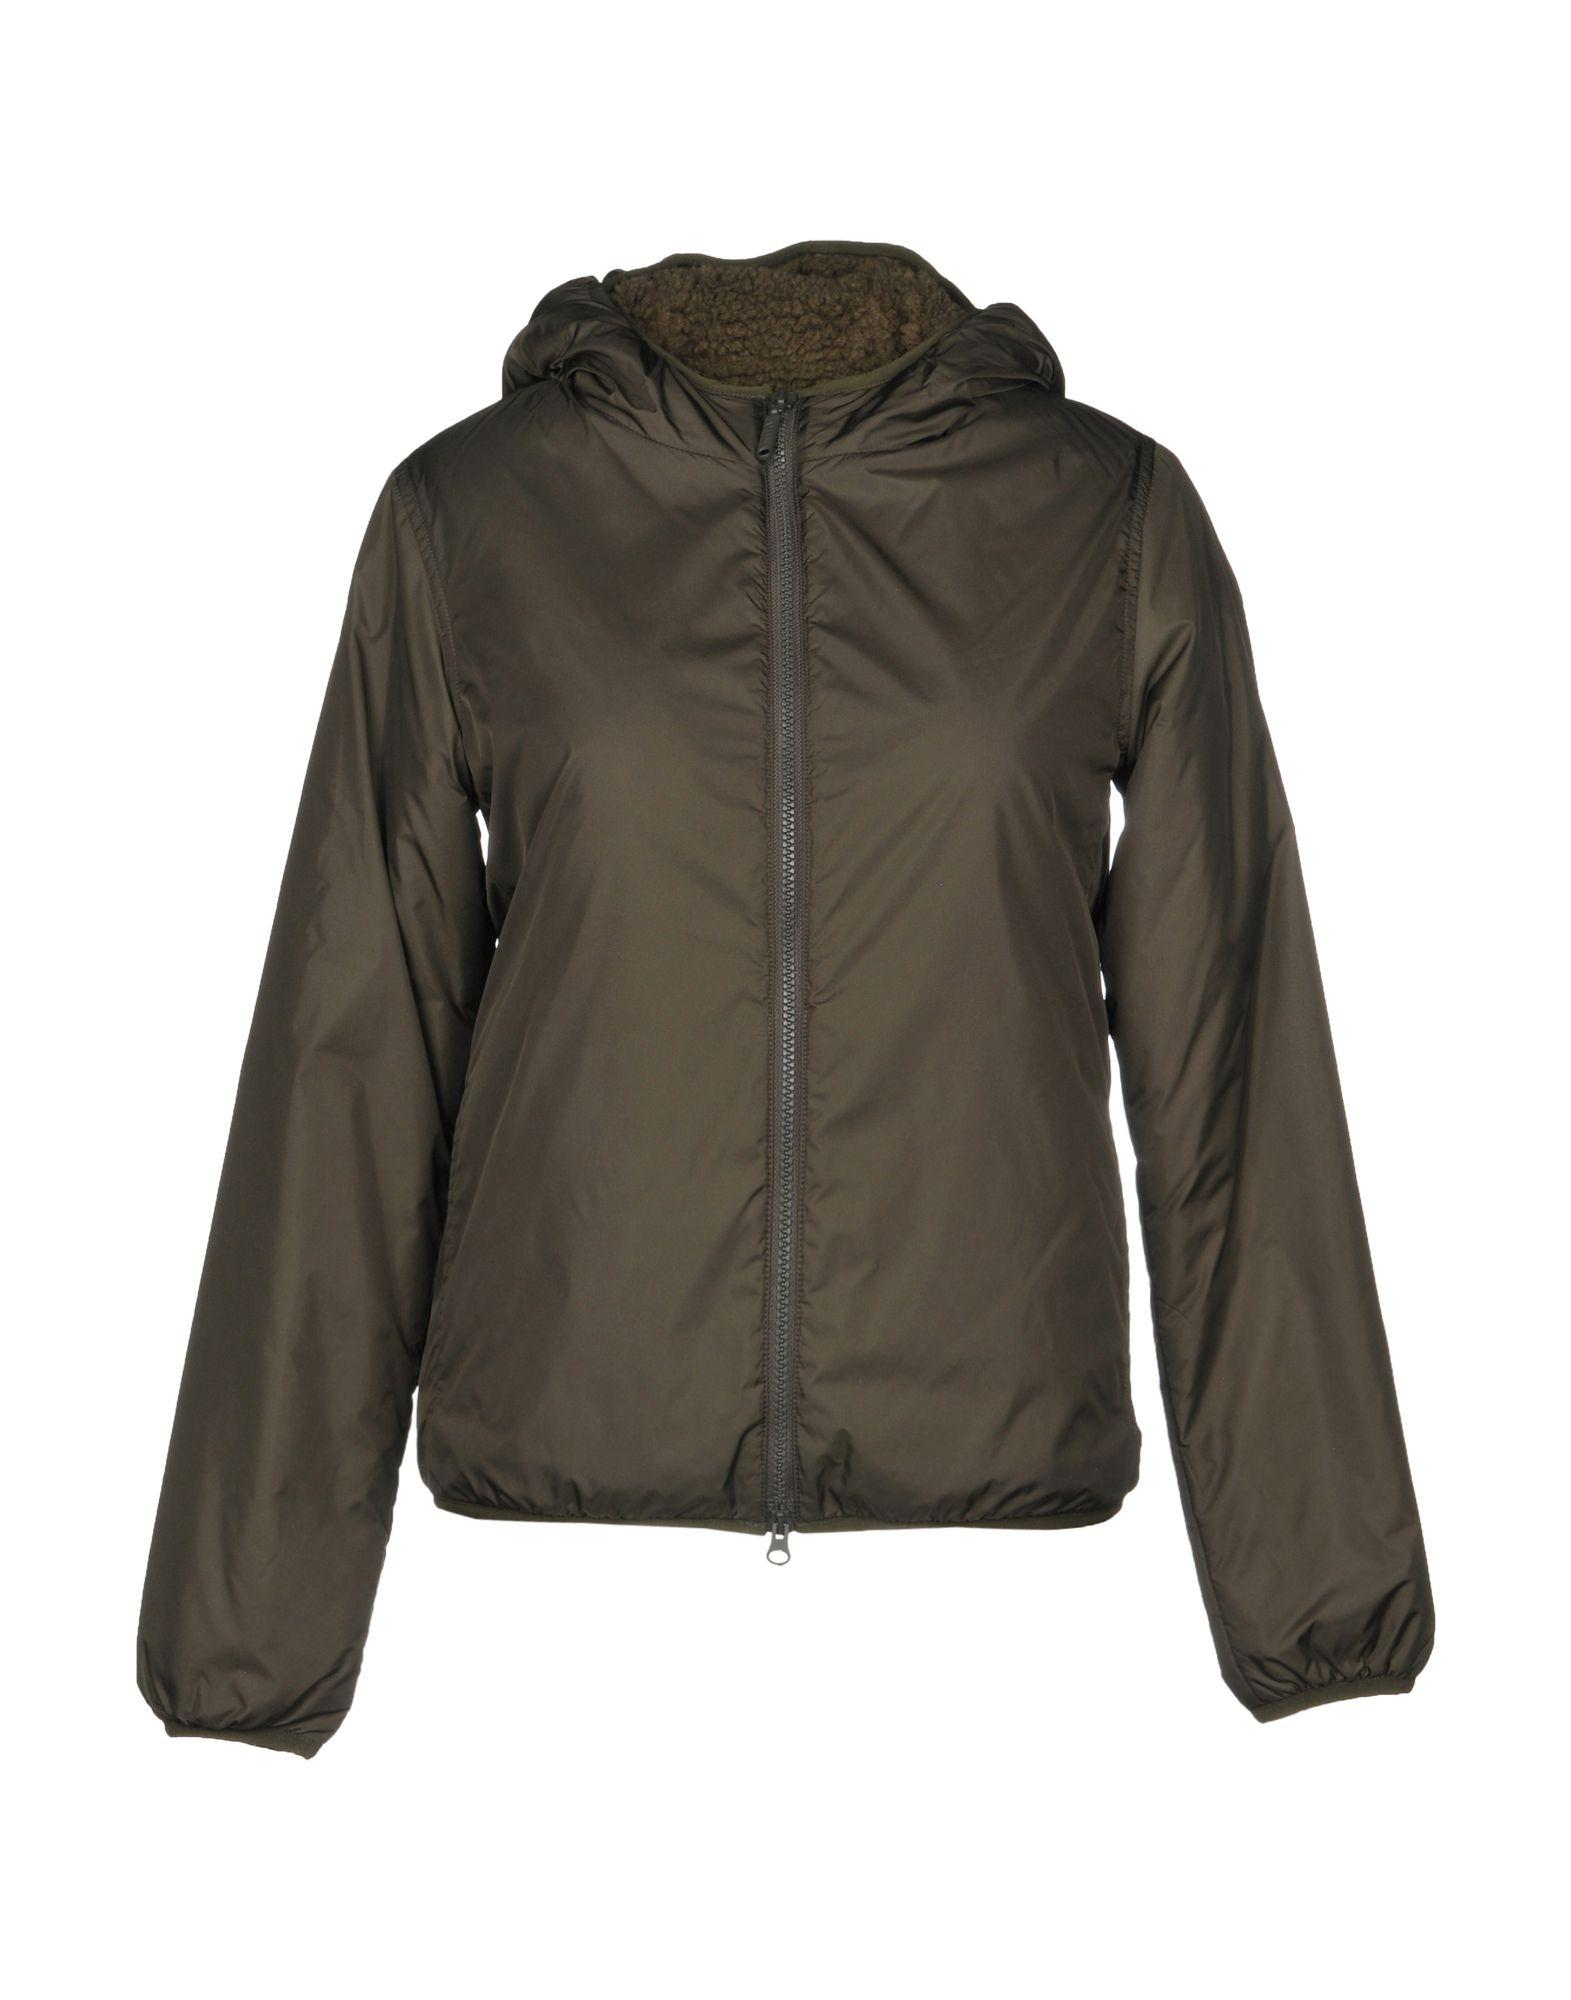 Aspesi Synthetic Down Jackets In Military Green